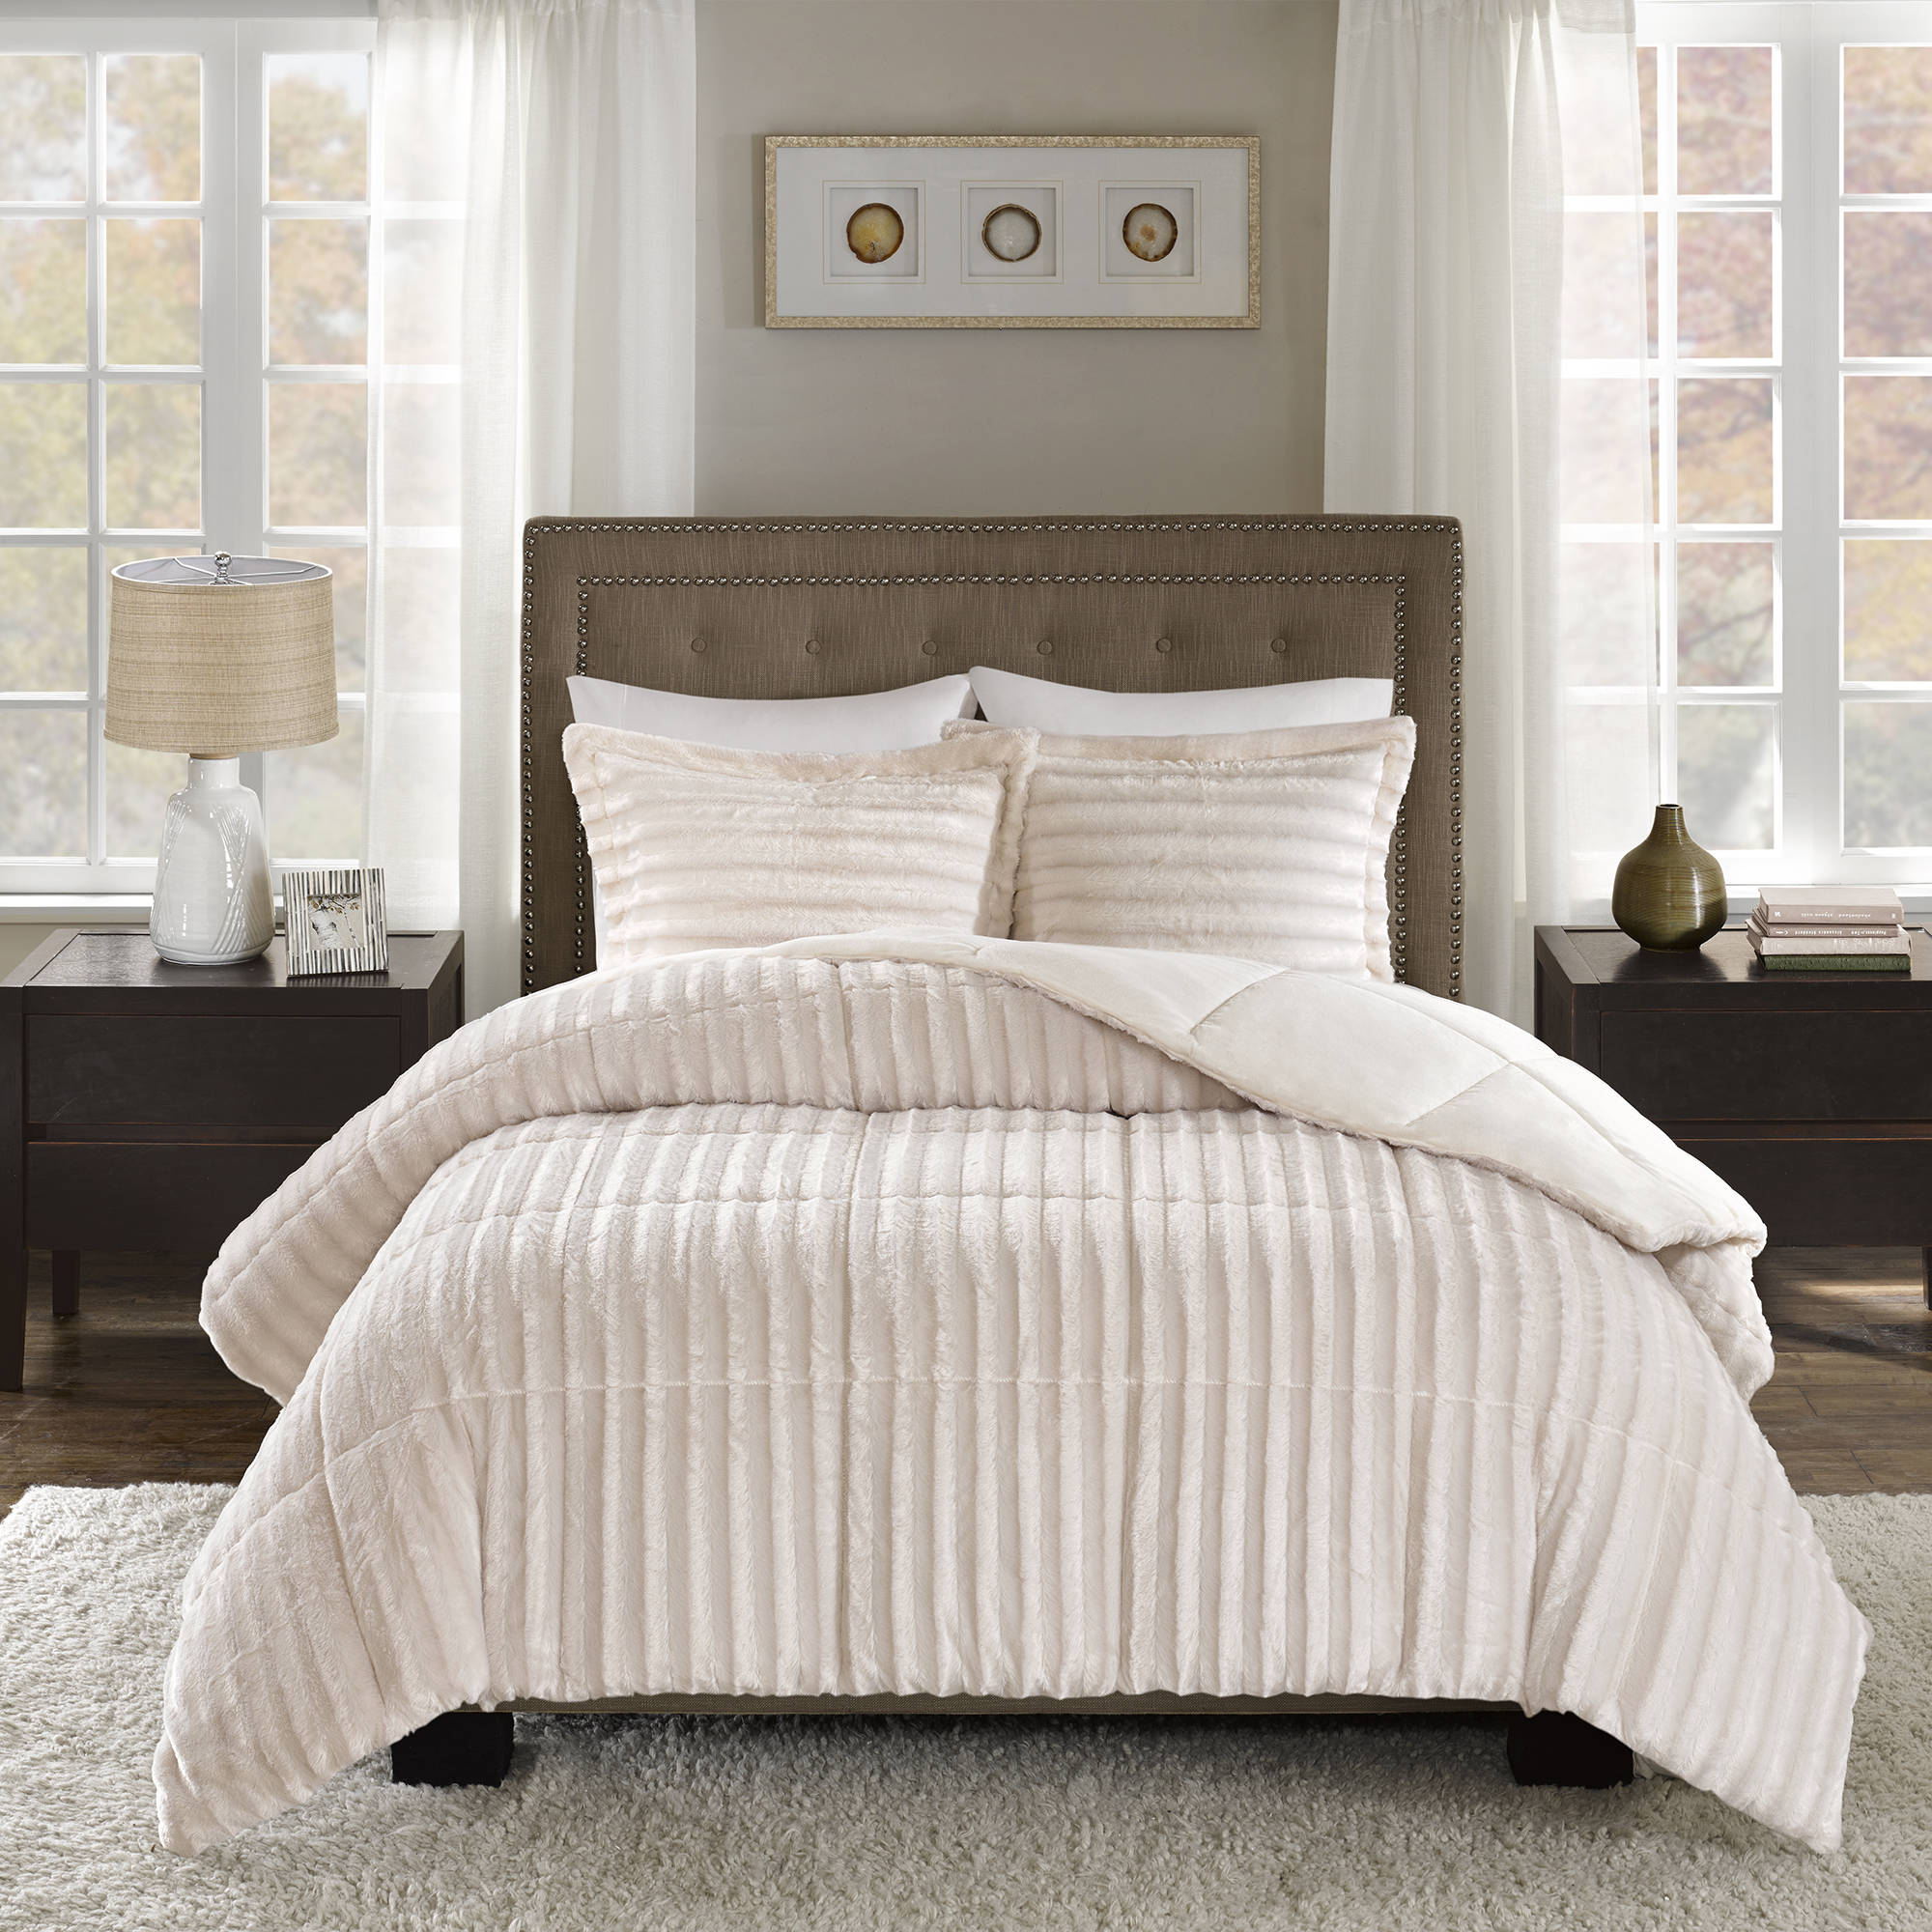 llc fur ensemble with at pattern products shot bella embroidered pm bedding screen motives colored will pillows faux by comforter natural and interior smith